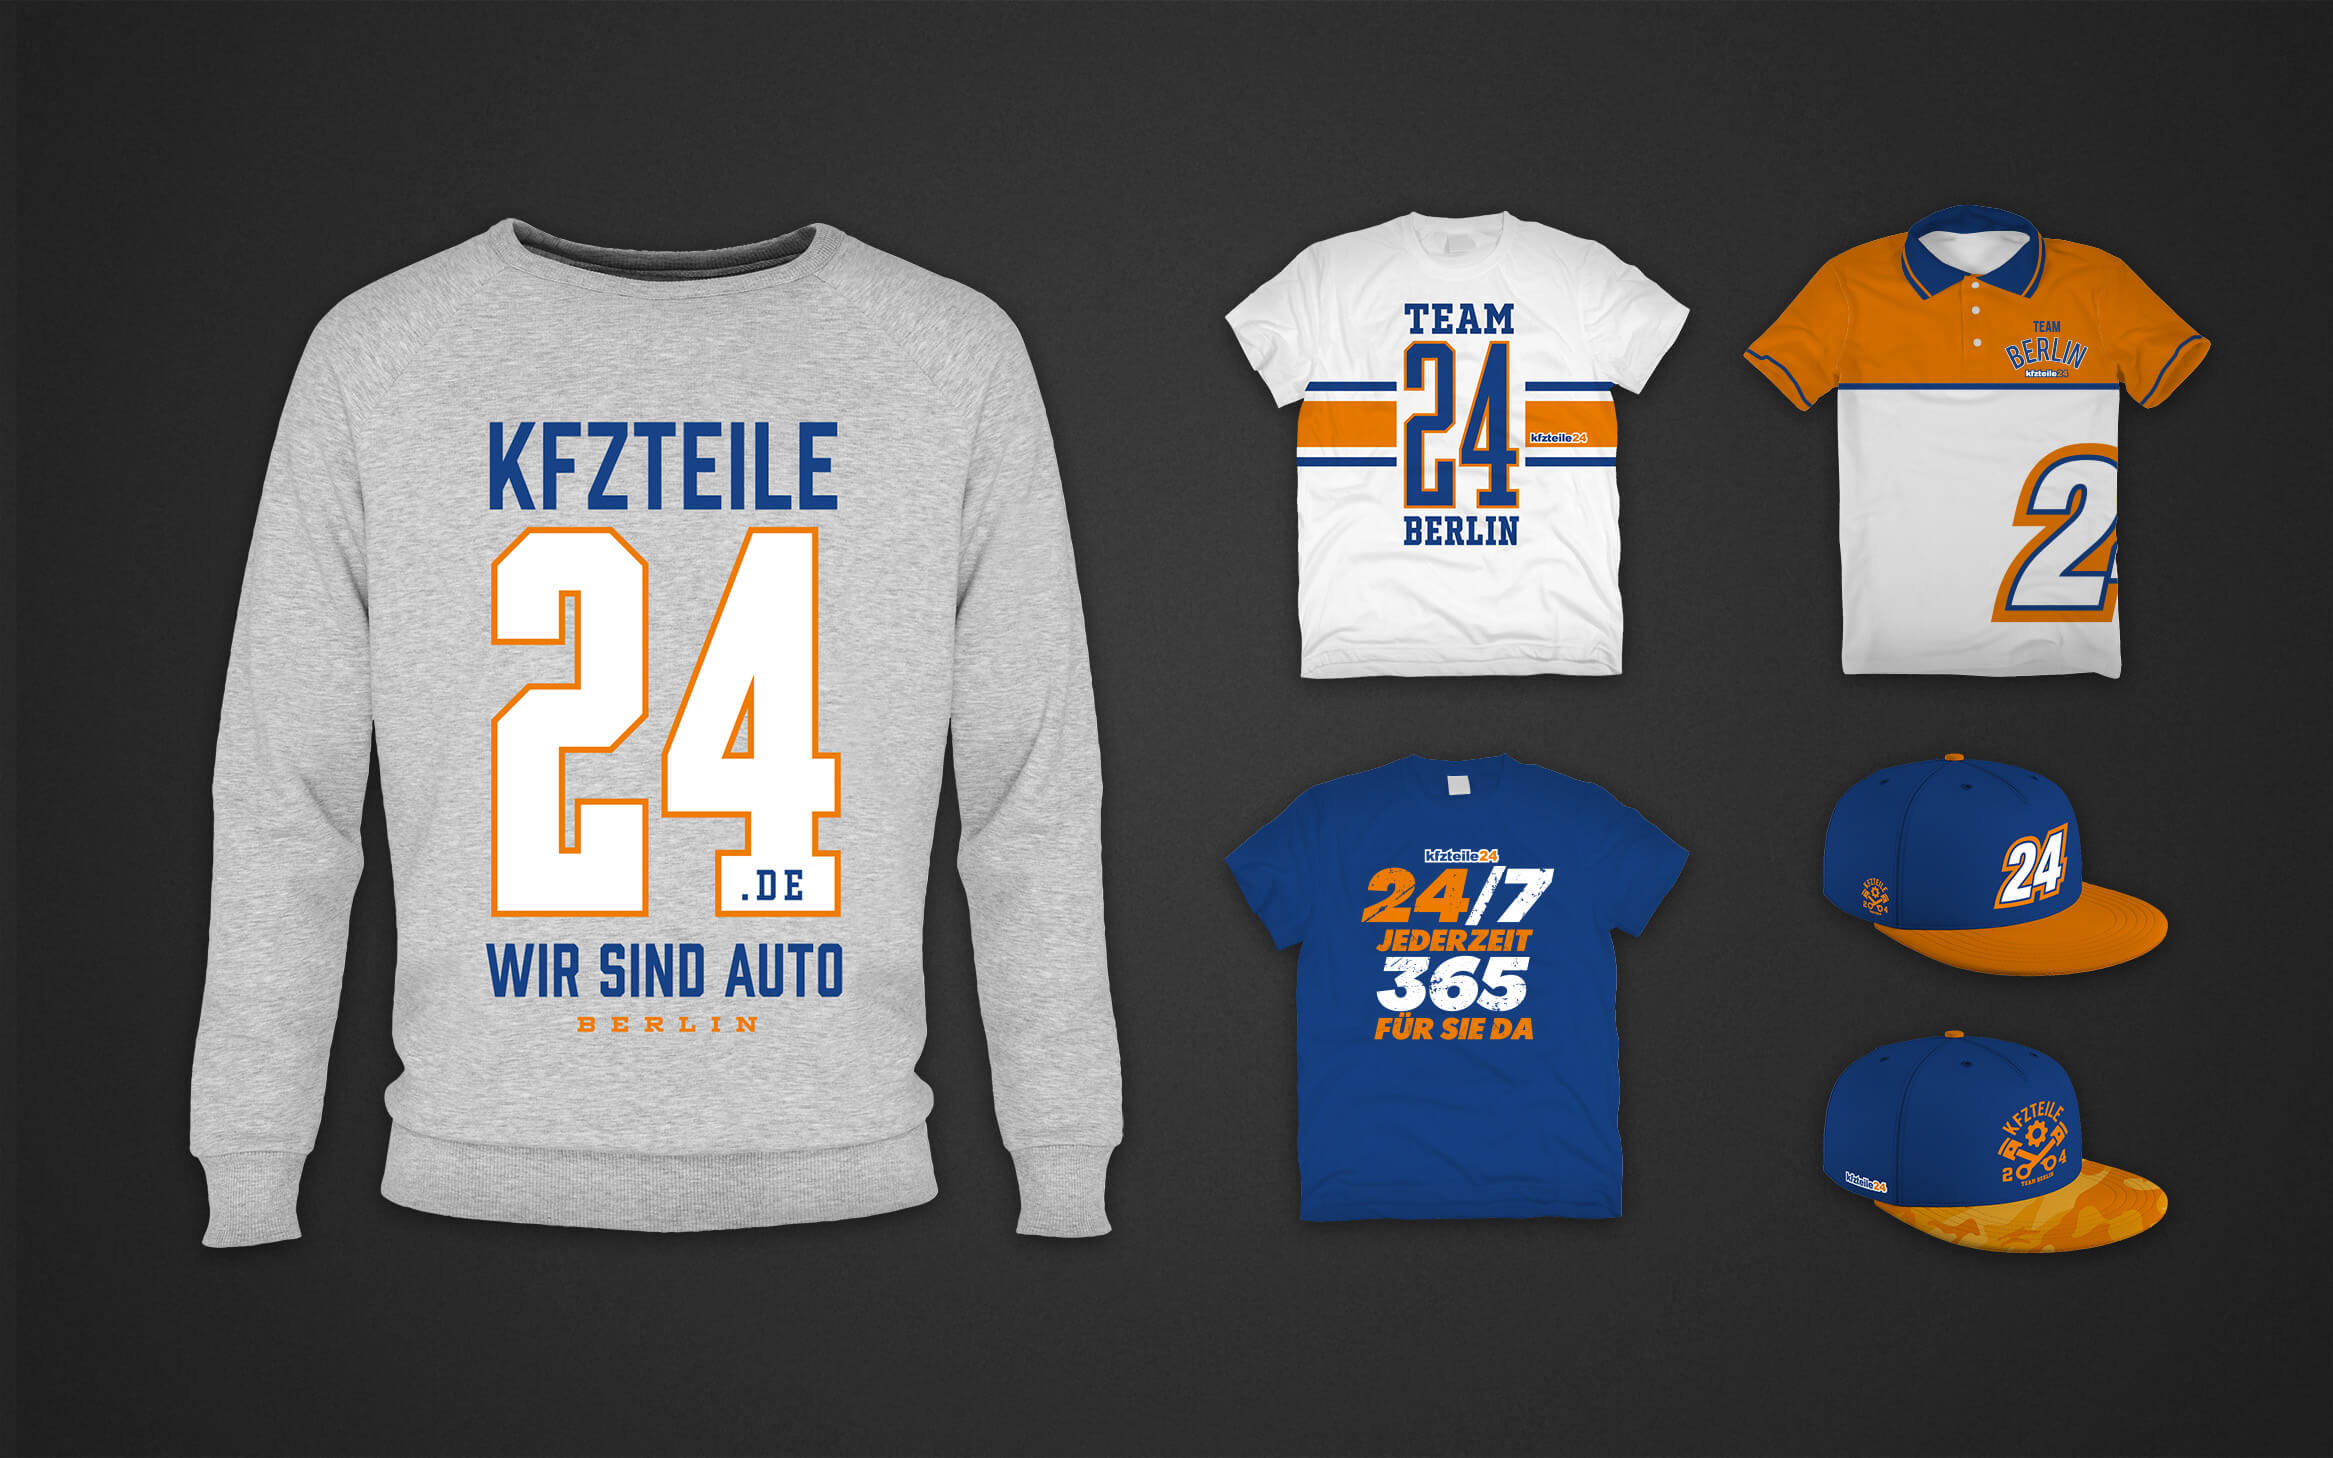 473-kfzteile24_textildesign_4